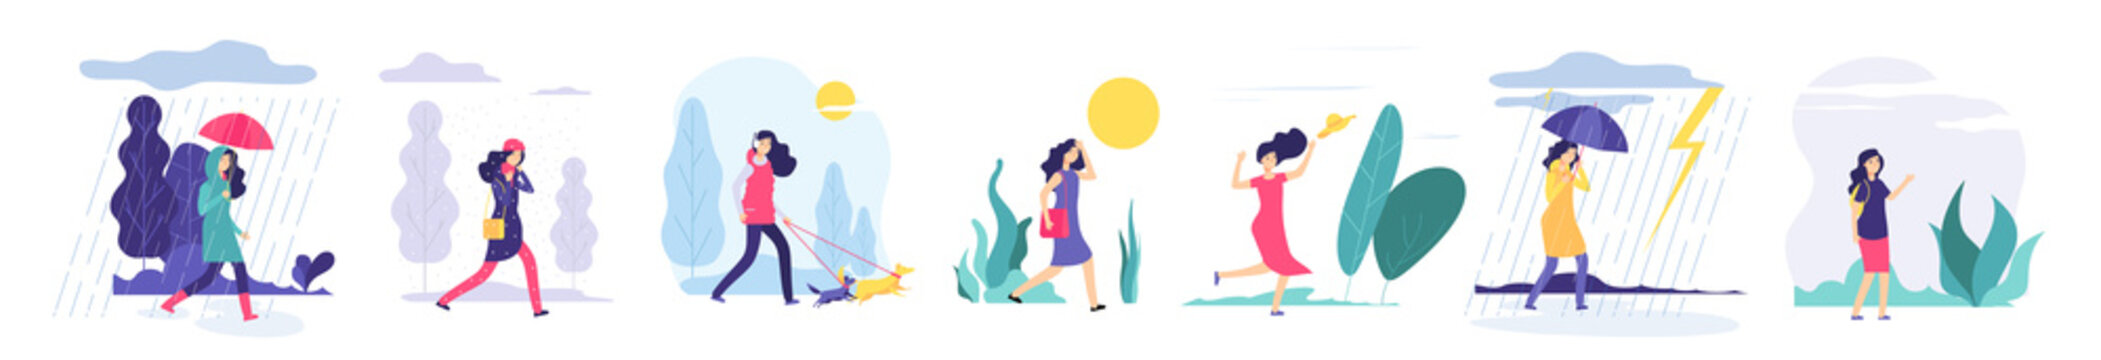 Woman various weather. Girl walking outdoors in different clothes snowfall cloudy wind heat rain with umbrella cold season vector set. Illustration of weather wind and sun, girl in jacket walk in rain